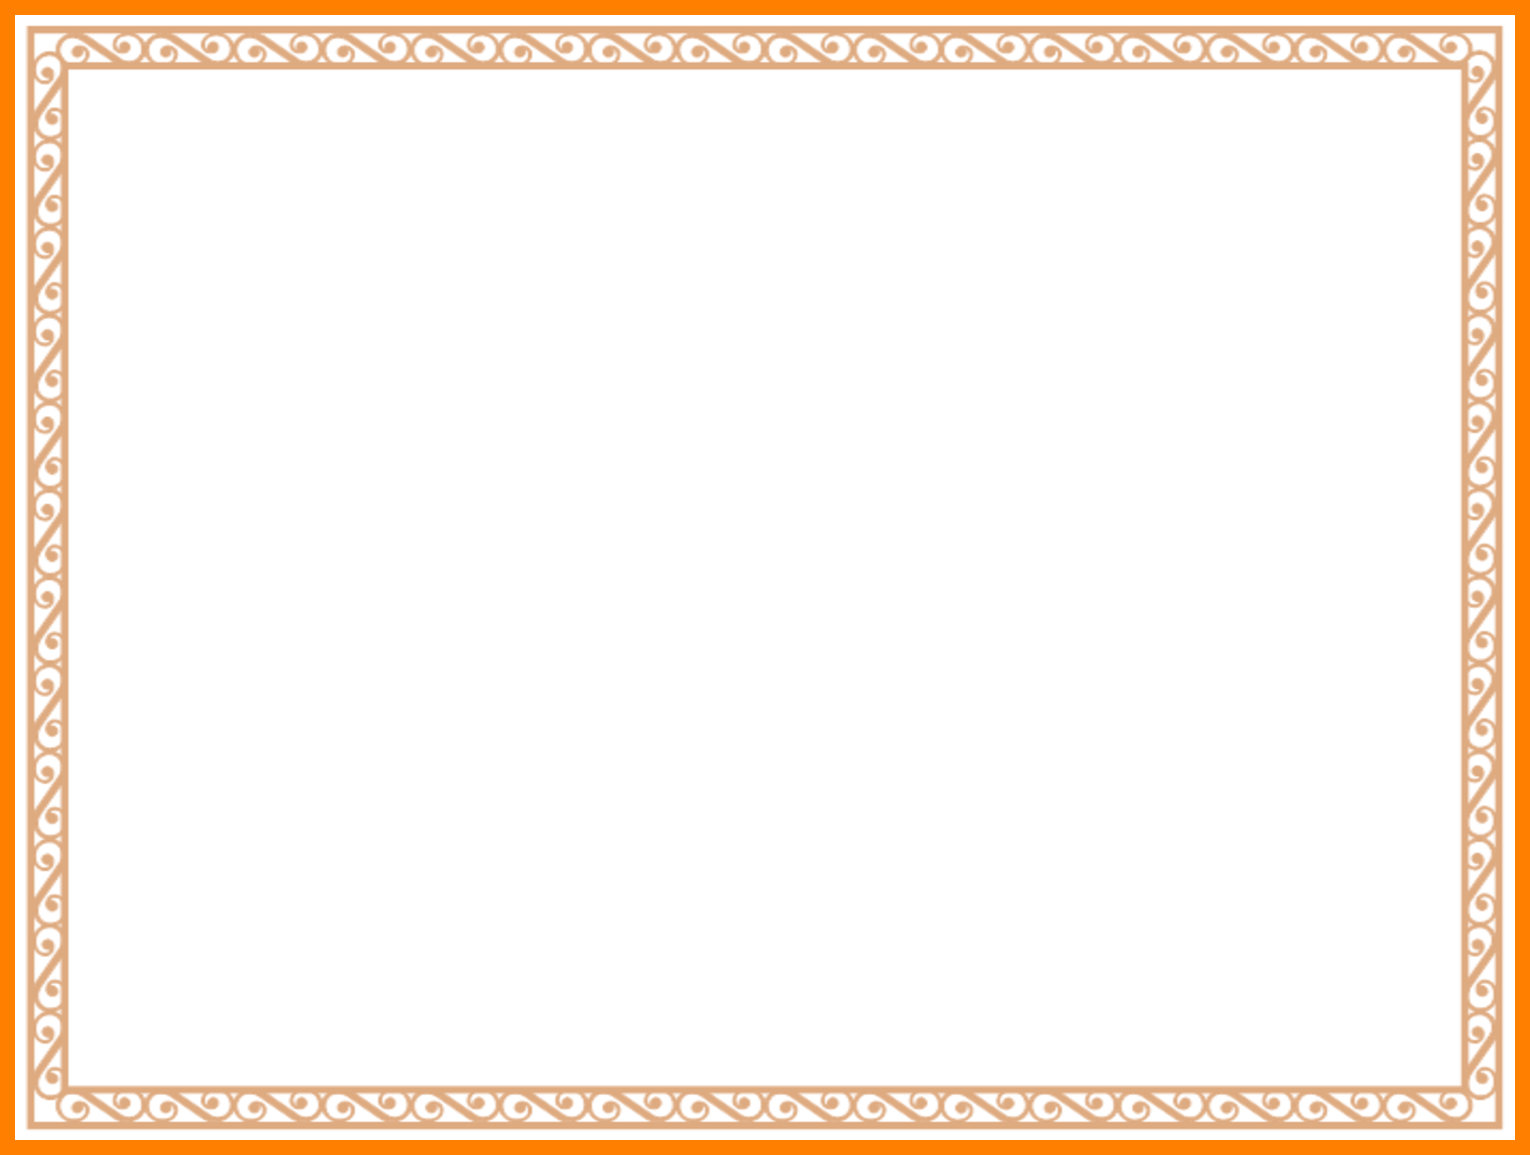 Borders and clipart clip art freeuse Borders PNG HD Transparent Borders HD.PNG Images.   PlusPNG clip art freeuse